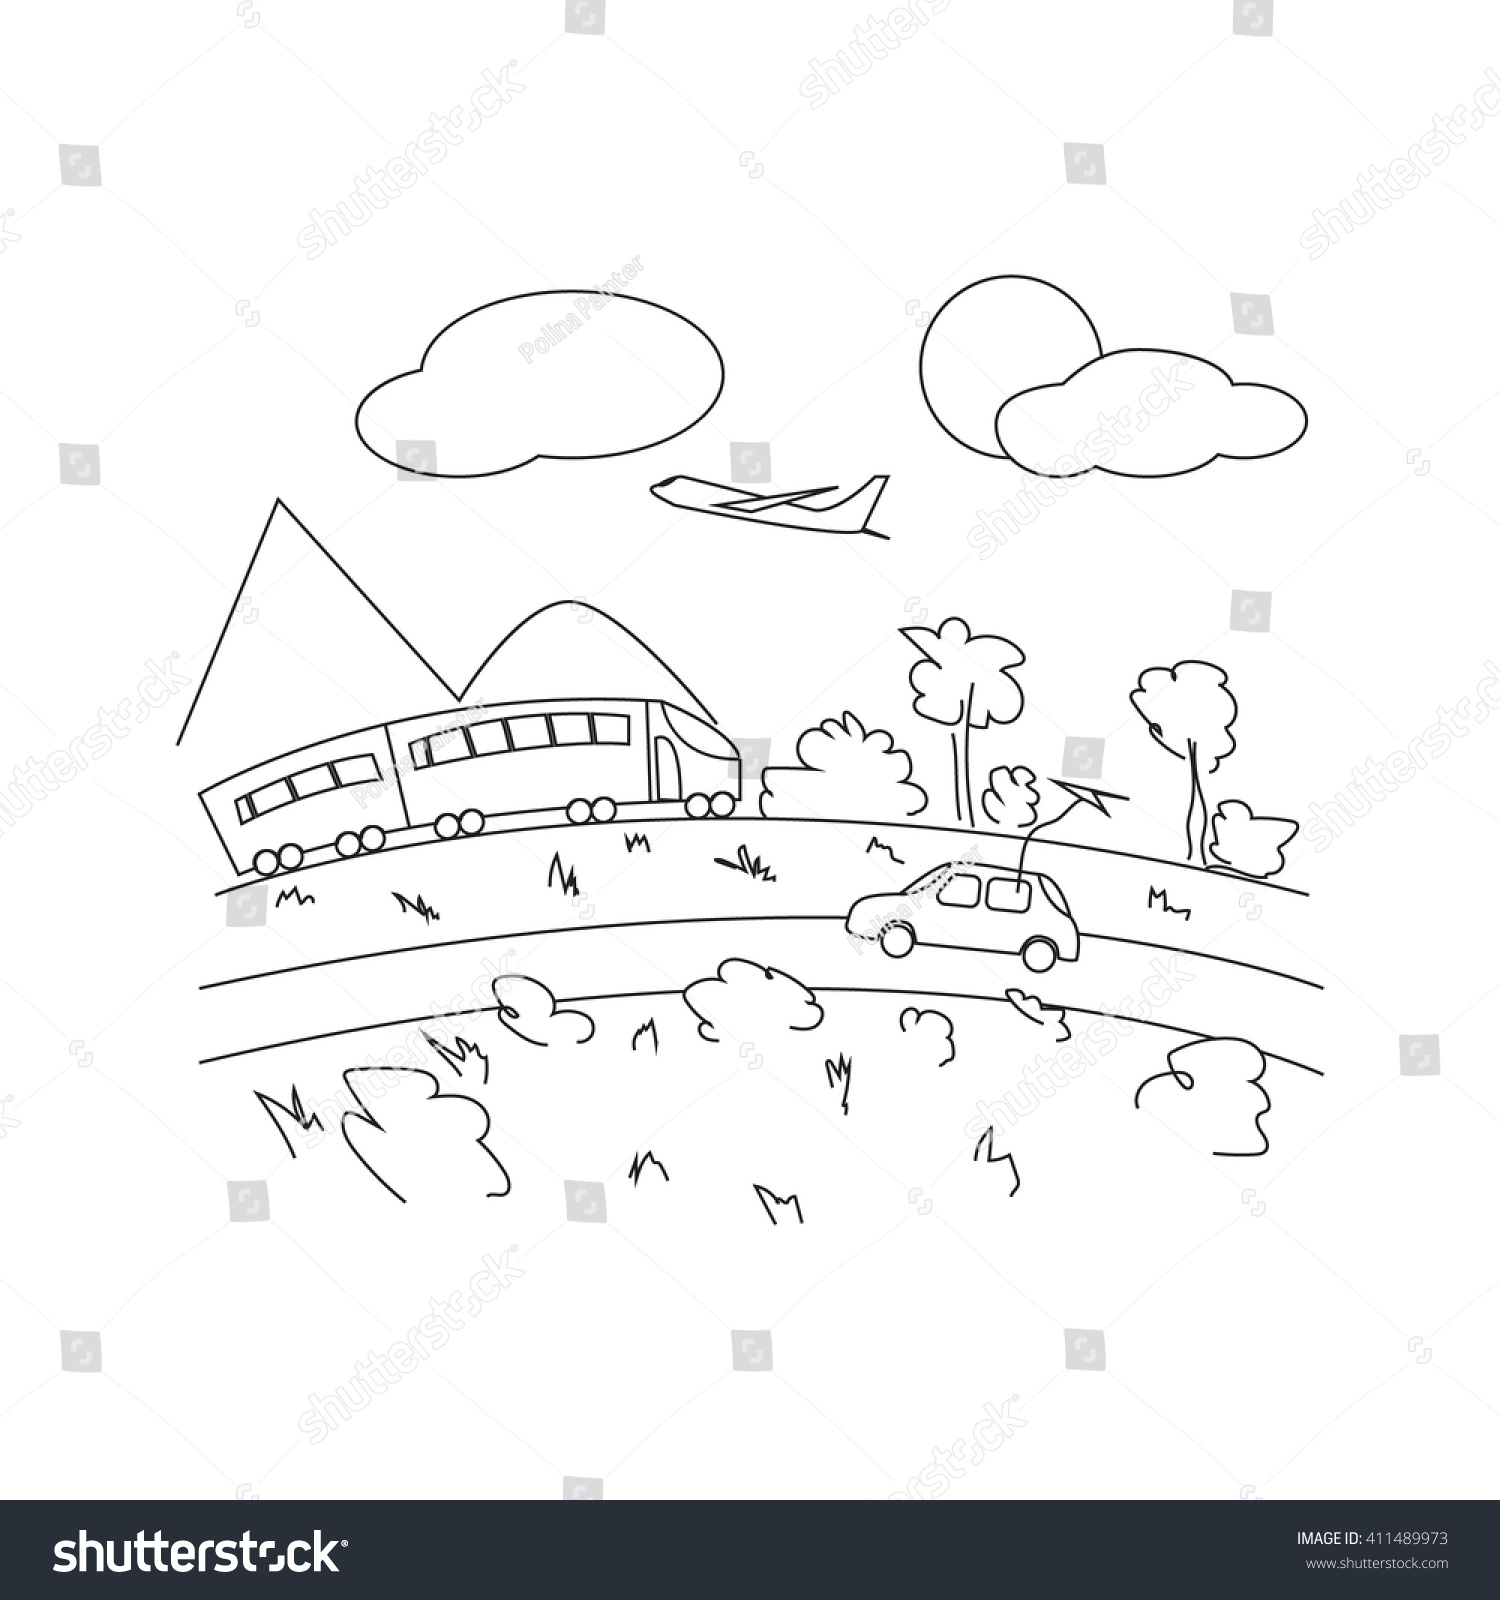 Plane Car Train Journey Childrens Coloring Stock Vector Royalty